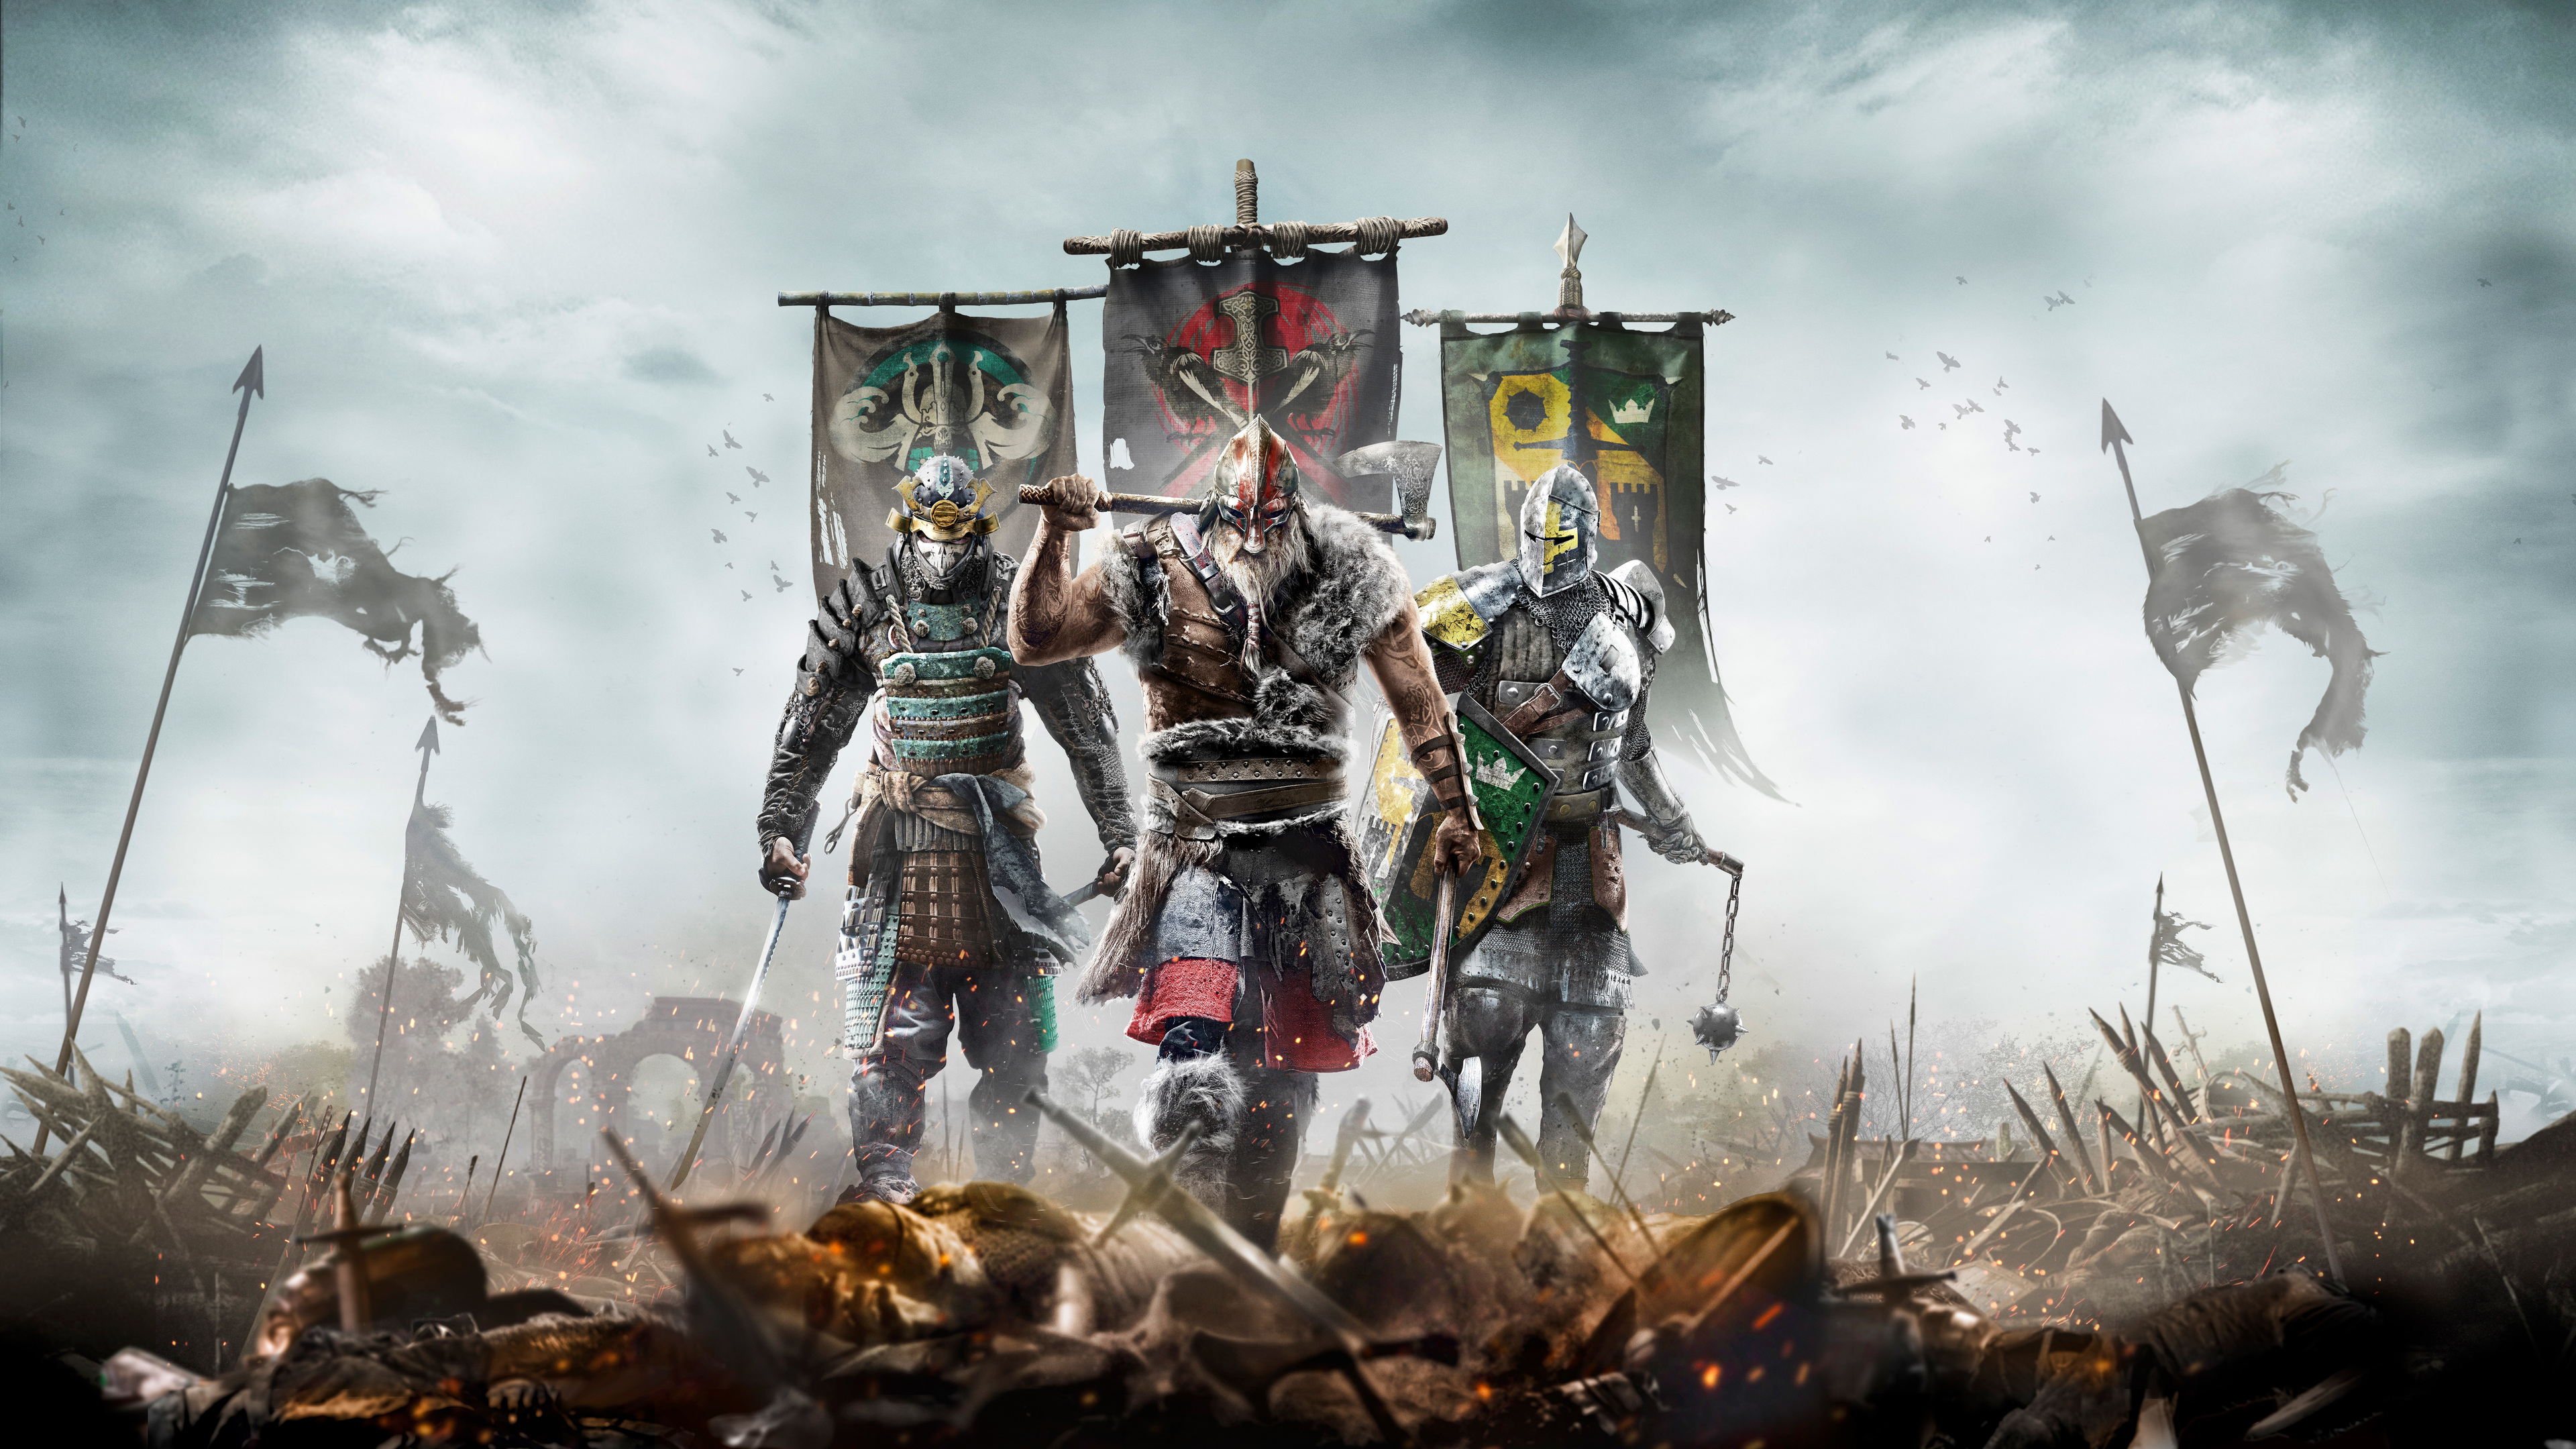 2018 for honor 8k 1537691030 - 2018 For Honor 8k - xbox games wallpapers, ps games wallpapers, pc games wallpapers, hd-wallpapers, games wallpapers, for honor wallpapers, 8k wallpapers, 5k wallpapers, 4k-wallpapers, 2018 games wallpapers